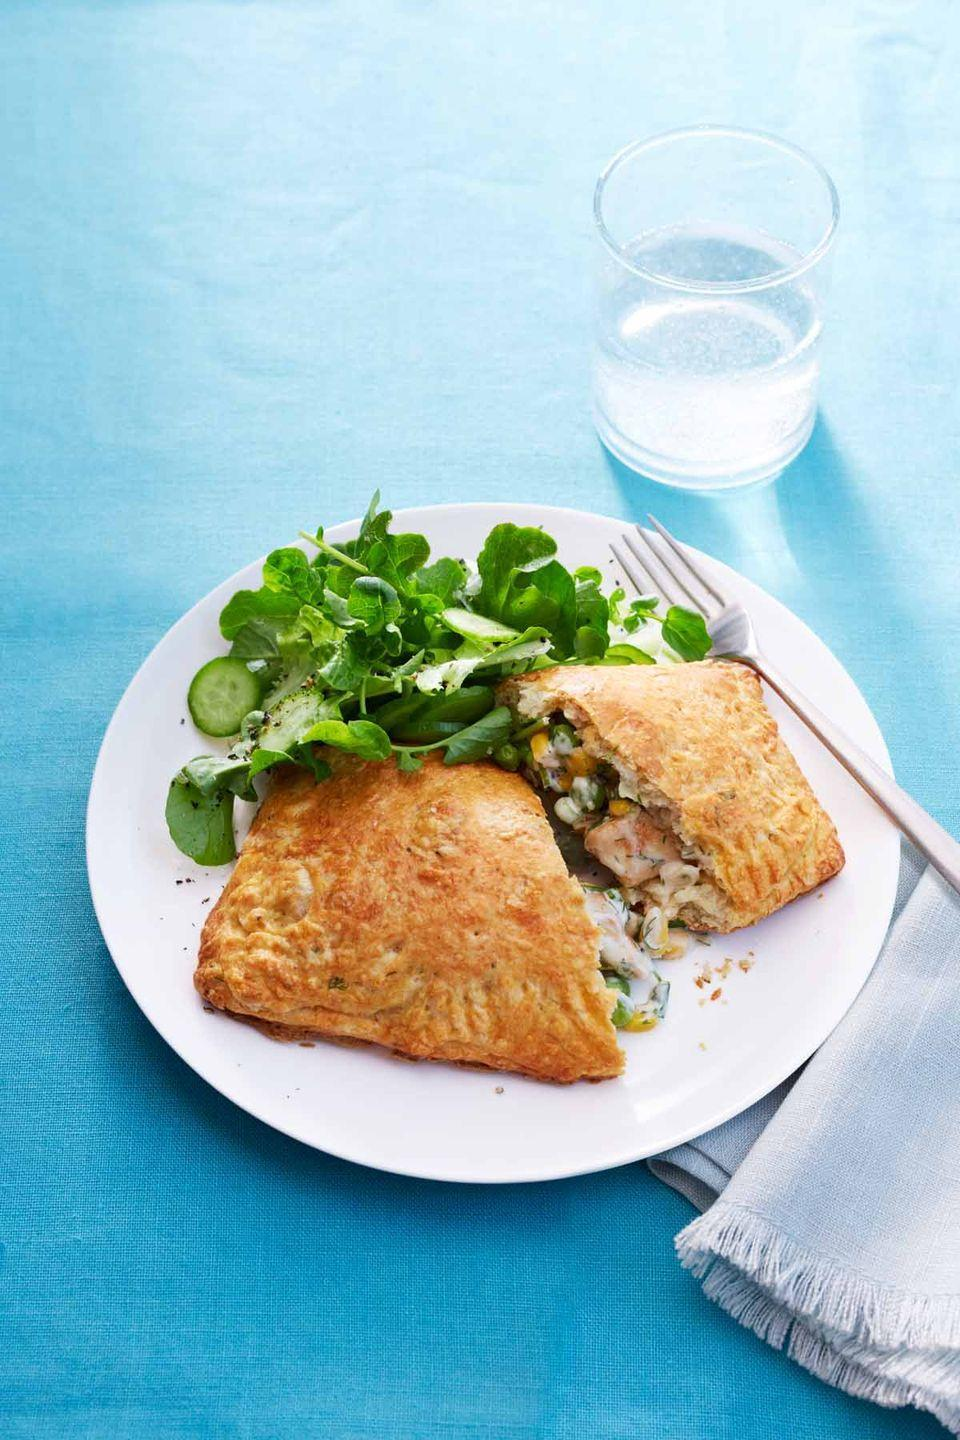 """<p>These chicken pot pie turnovers transform the classic comfort food into a dish fancy enough for a special occasion. </p><p><em><a href=""""https://www.womansday.com/food-recipes/food-drinks/recipes/a54438/chicken-pot-pie-turnovers-recipe/"""" rel=""""nofollow noopener"""" target=""""_blank"""" data-ylk=""""slk:Get the recipe for Chicken Pot Pie Turnovers."""" class=""""link rapid-noclick-resp"""">Get the recipe for Chicken Pot Pie Turnovers.</a> </em><br></p>"""